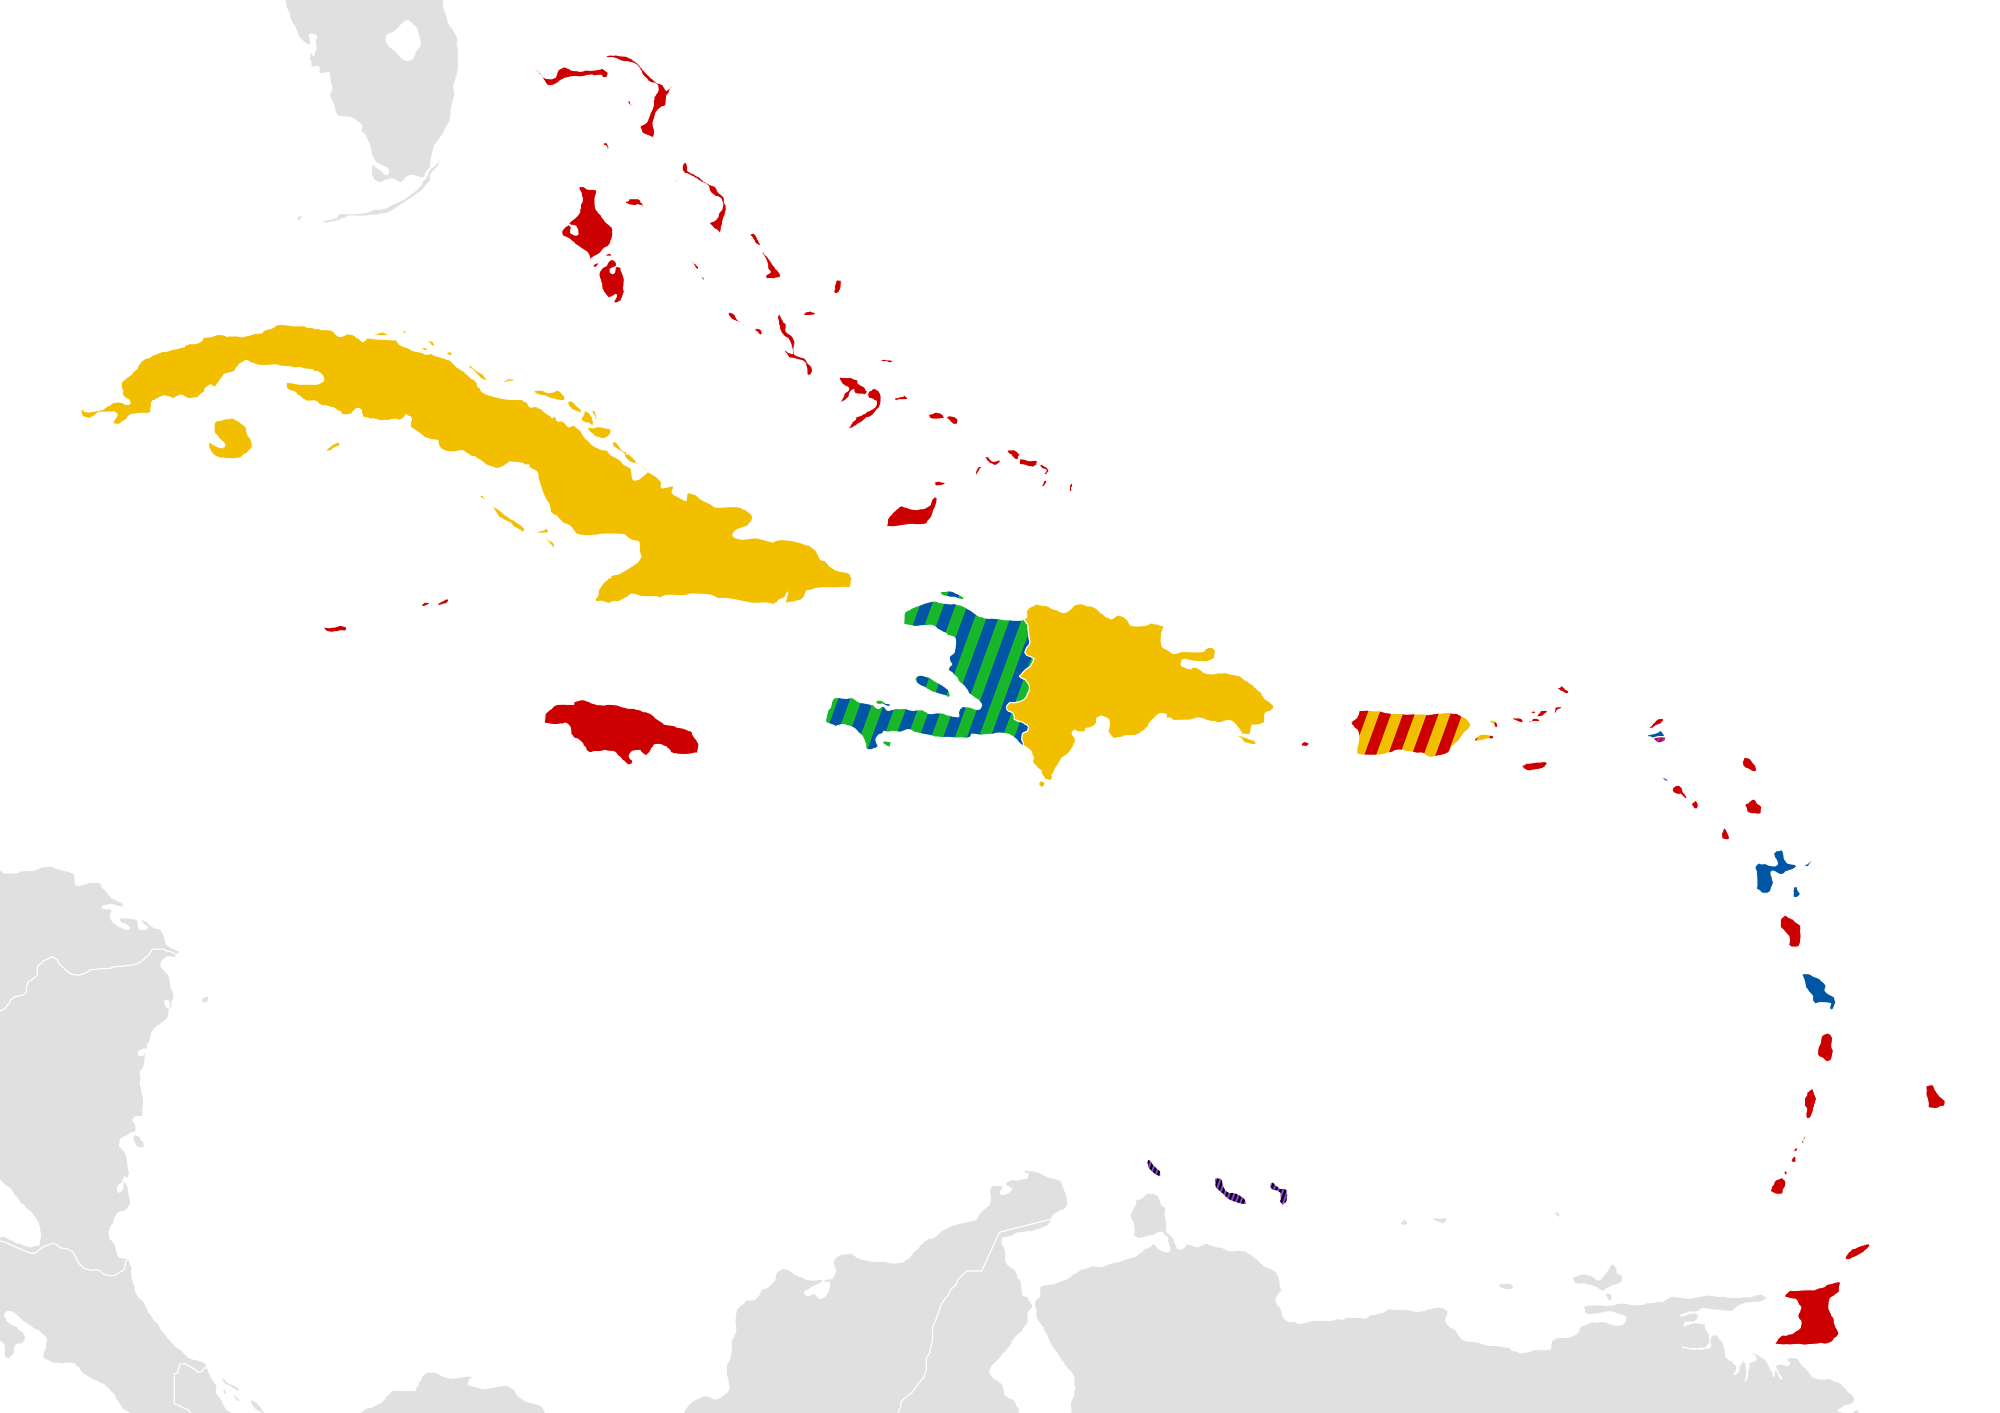 12 Caribbean Maps You Need | Caribbean Islands Map - Adventugo